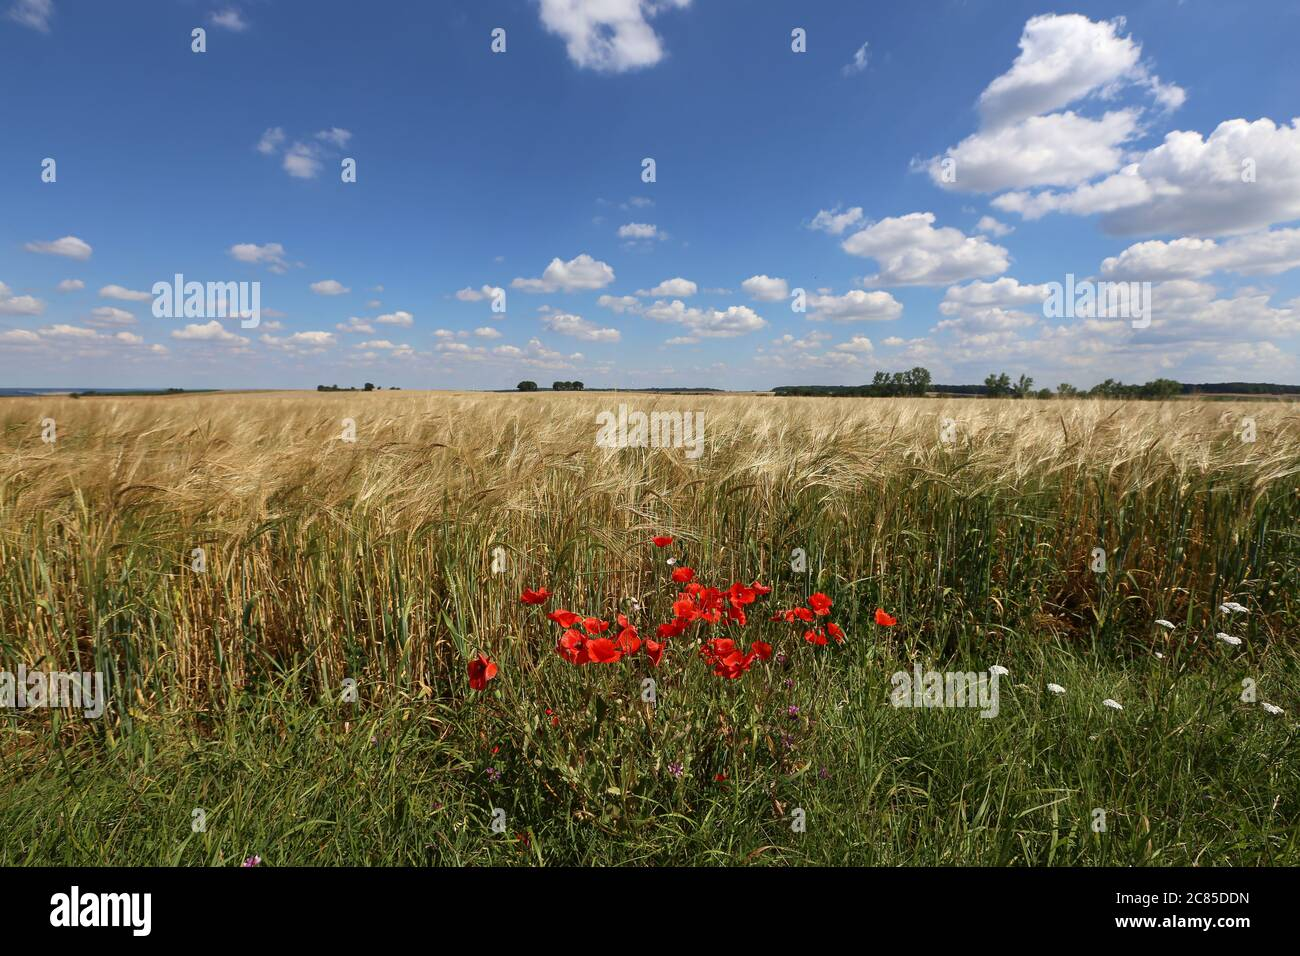 Red poppies grow on the edge of a wheat field - Stock Photo